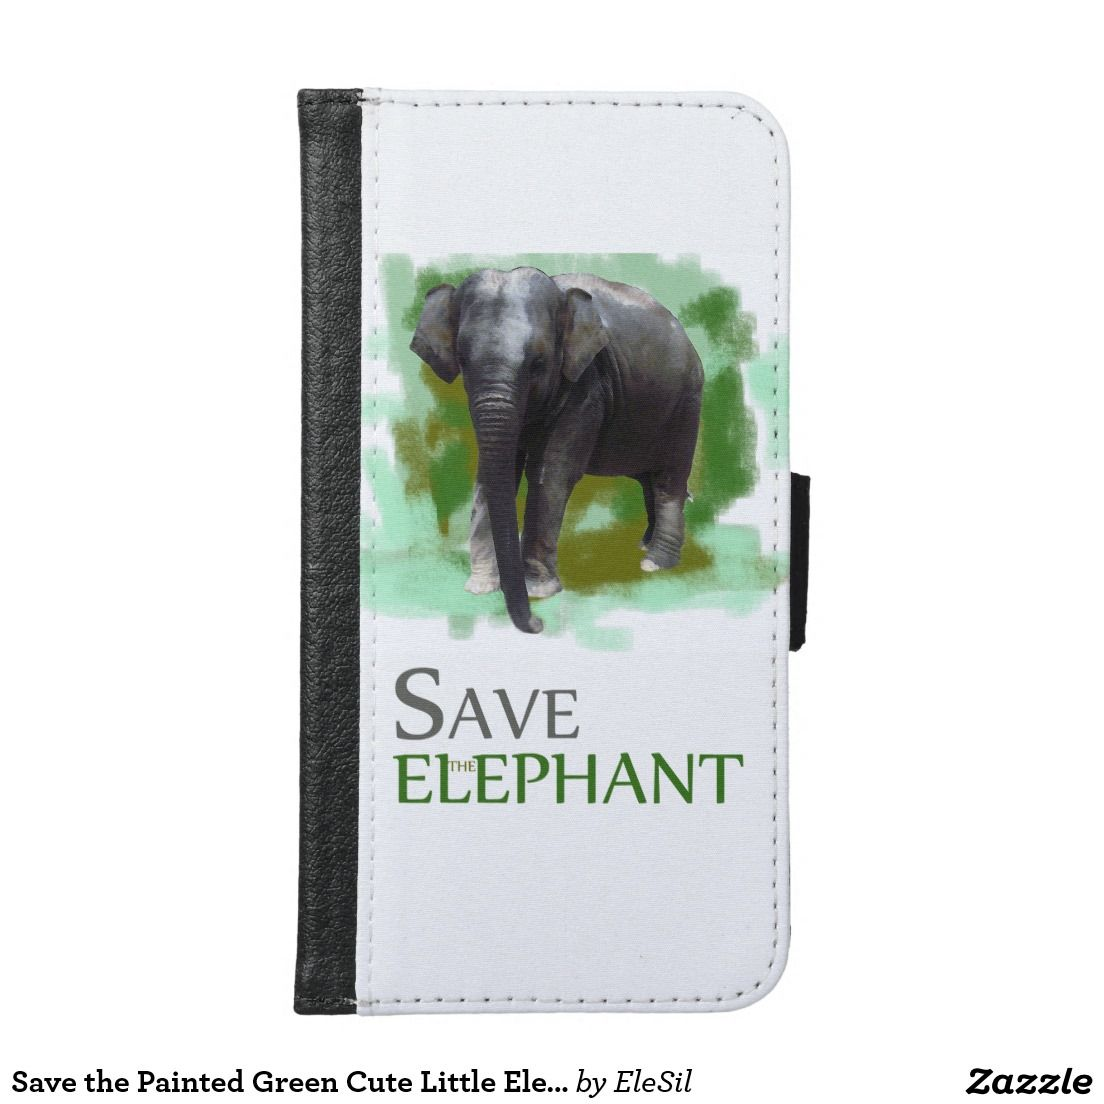 Save the Painted Green Cute Little Elephant